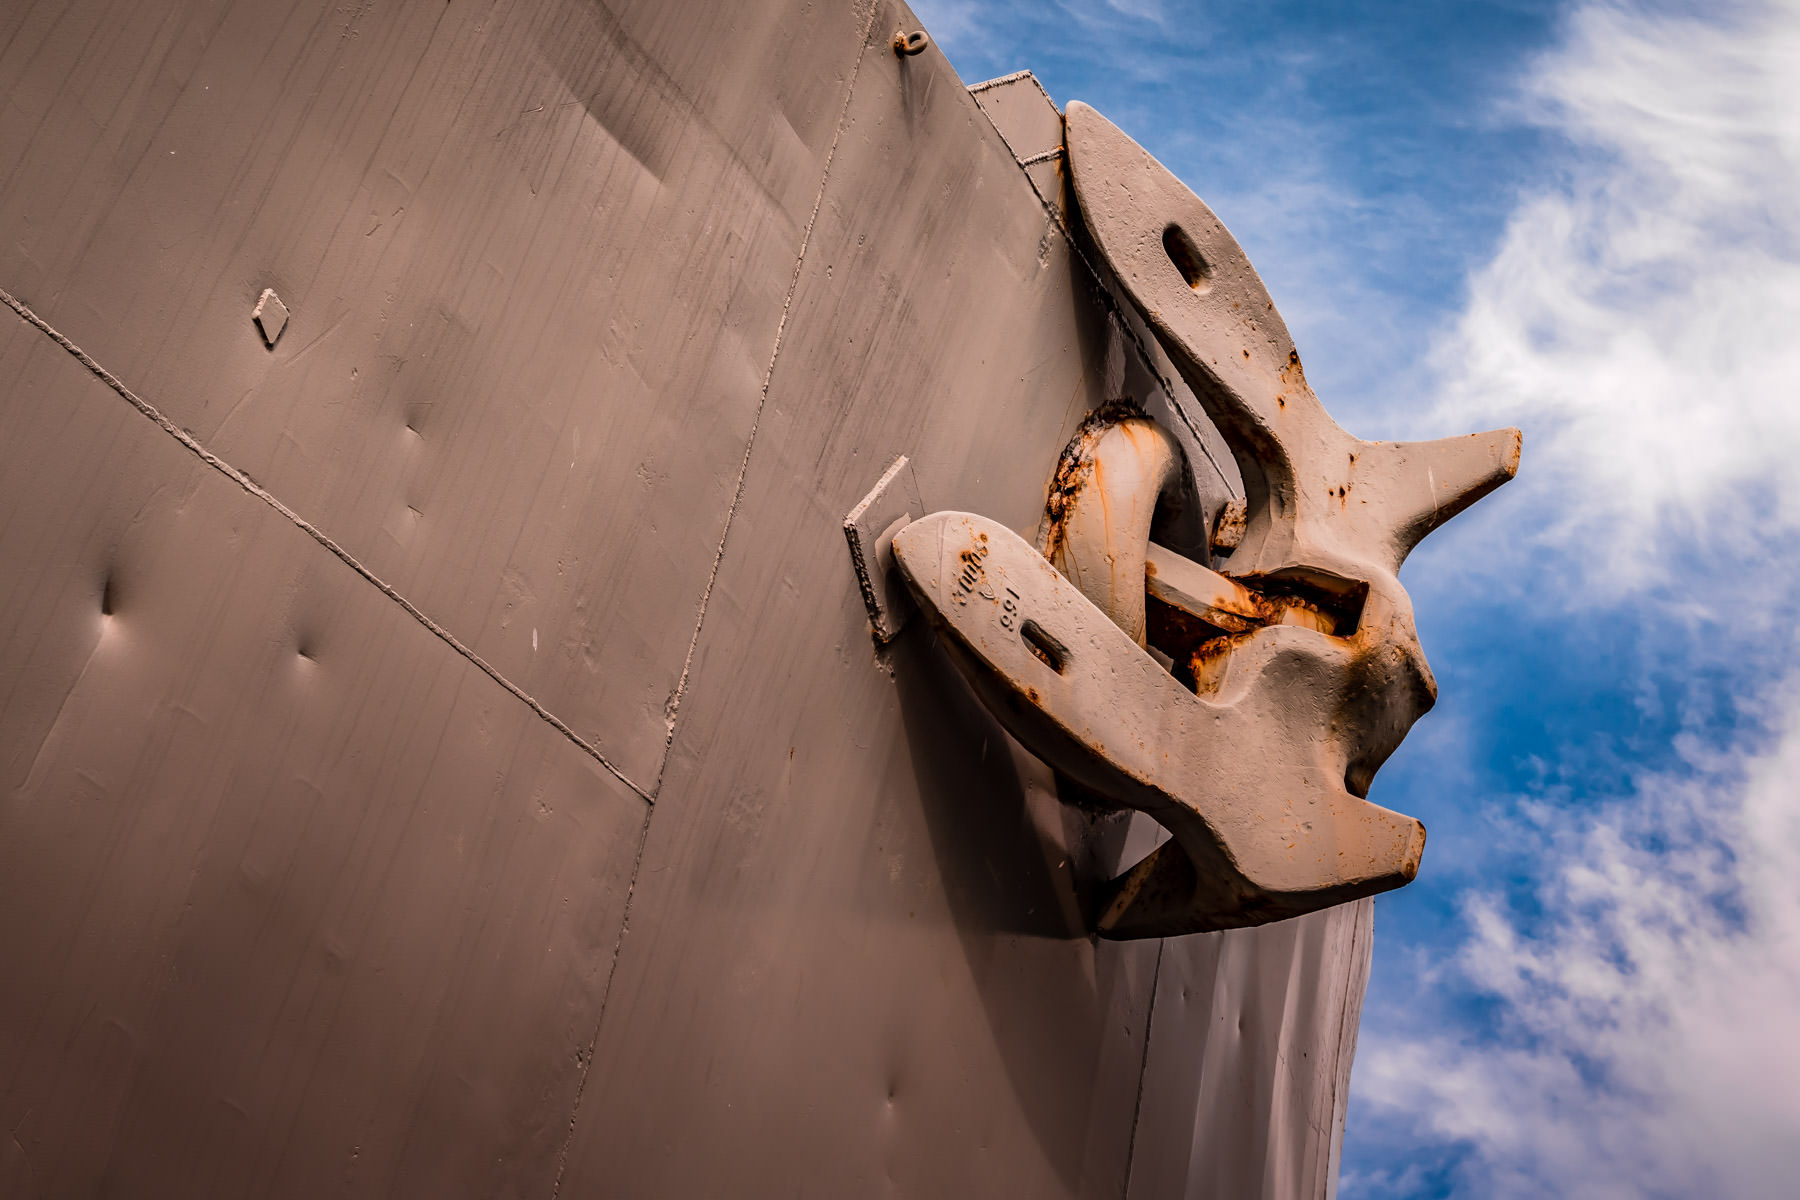 The starboard anchor of the Edsall-class destroyer escort USS Stewart, at Seawolf Park, Galveston, Texas.